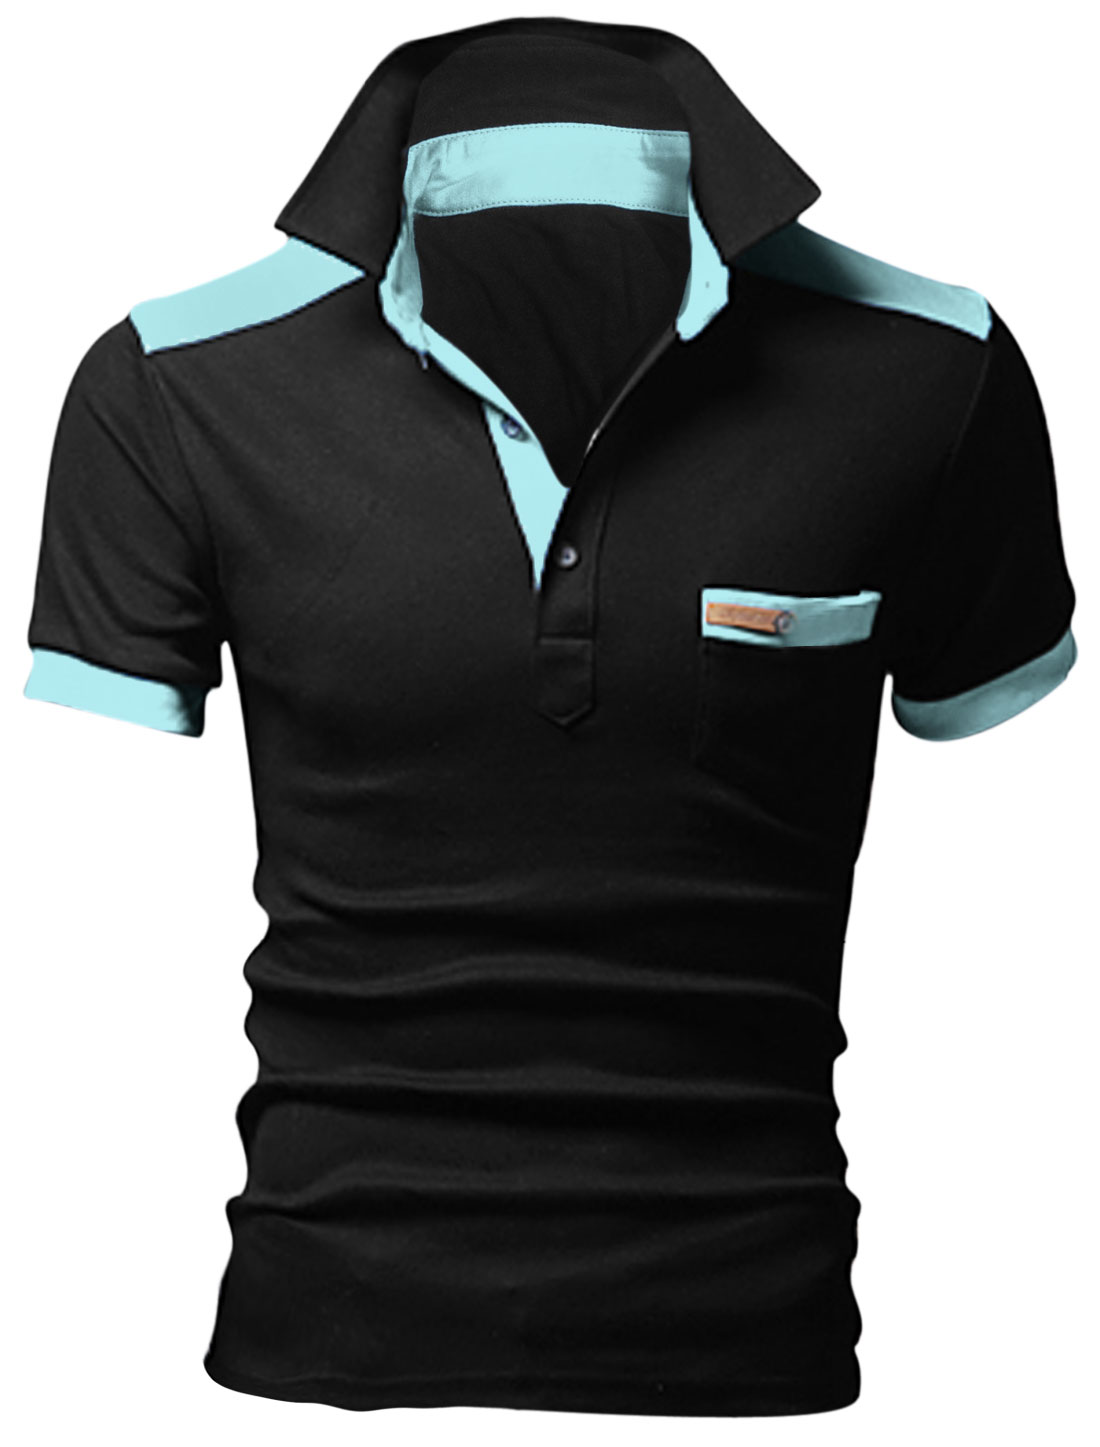 Man Panel Point Collar Short Sleeve Chest Pocket Polo Shirt Black M